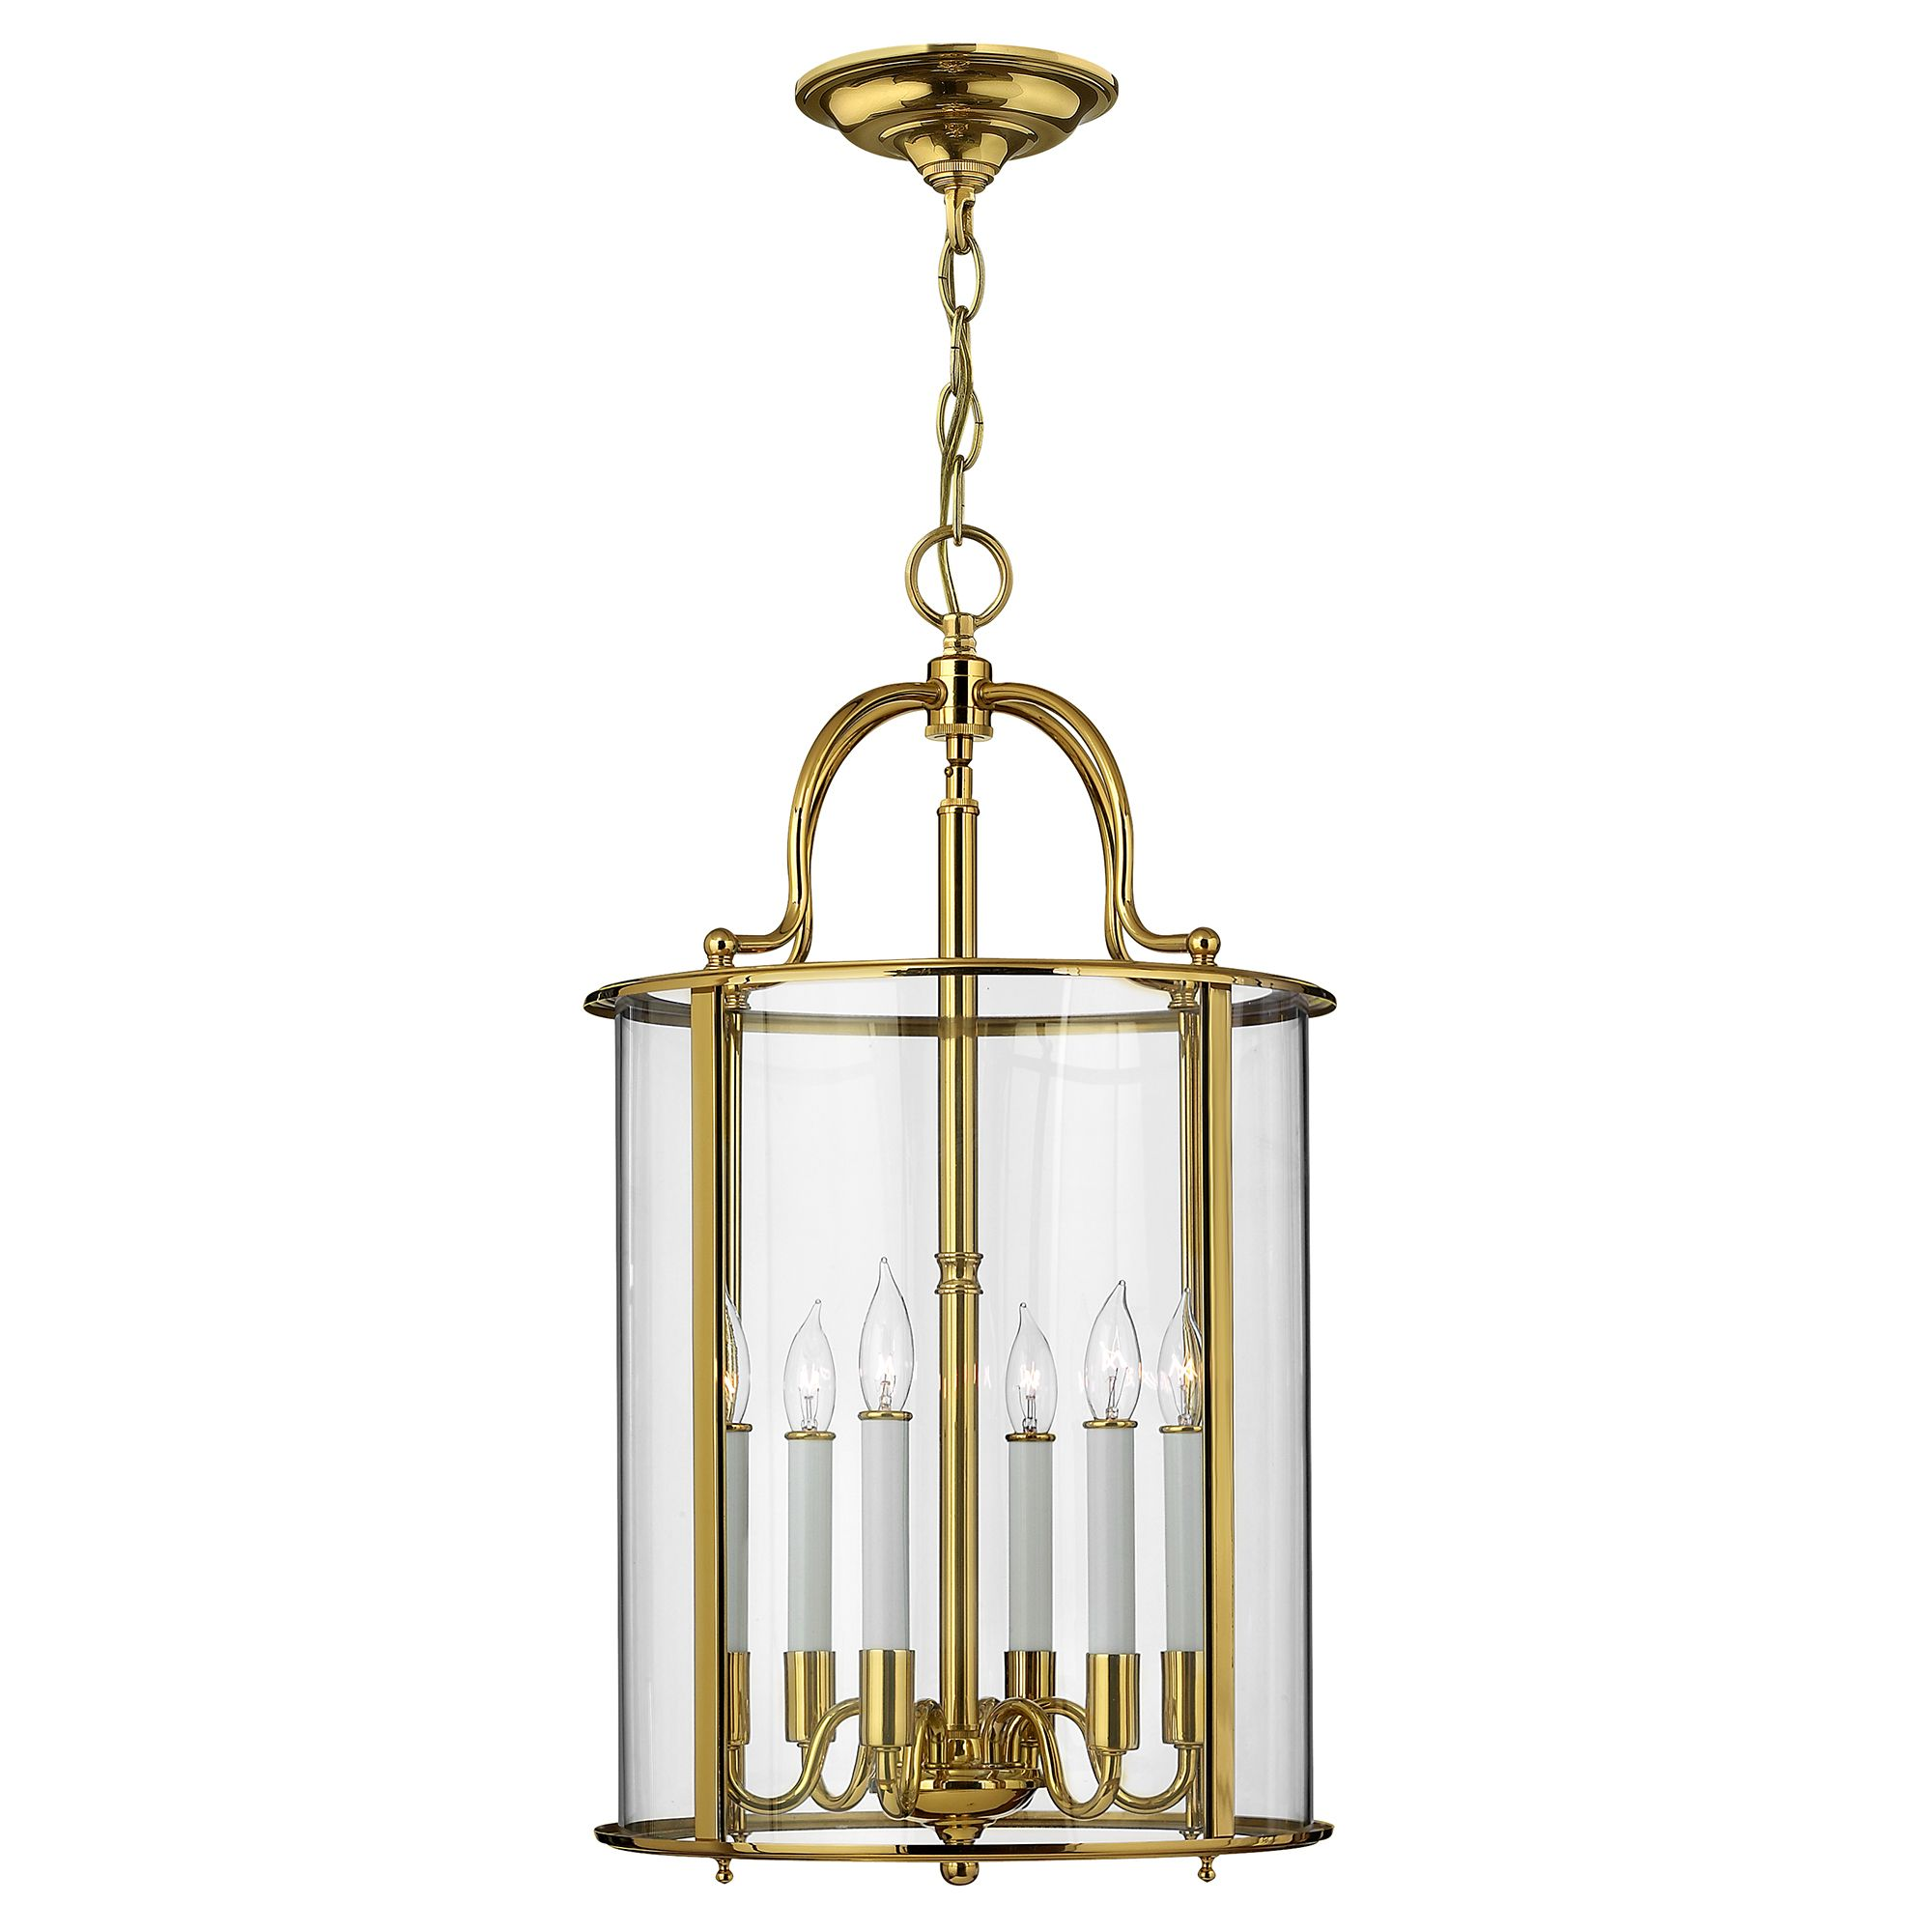 Gentry 6 Light Large Lantern Pendant In A Polished Solid